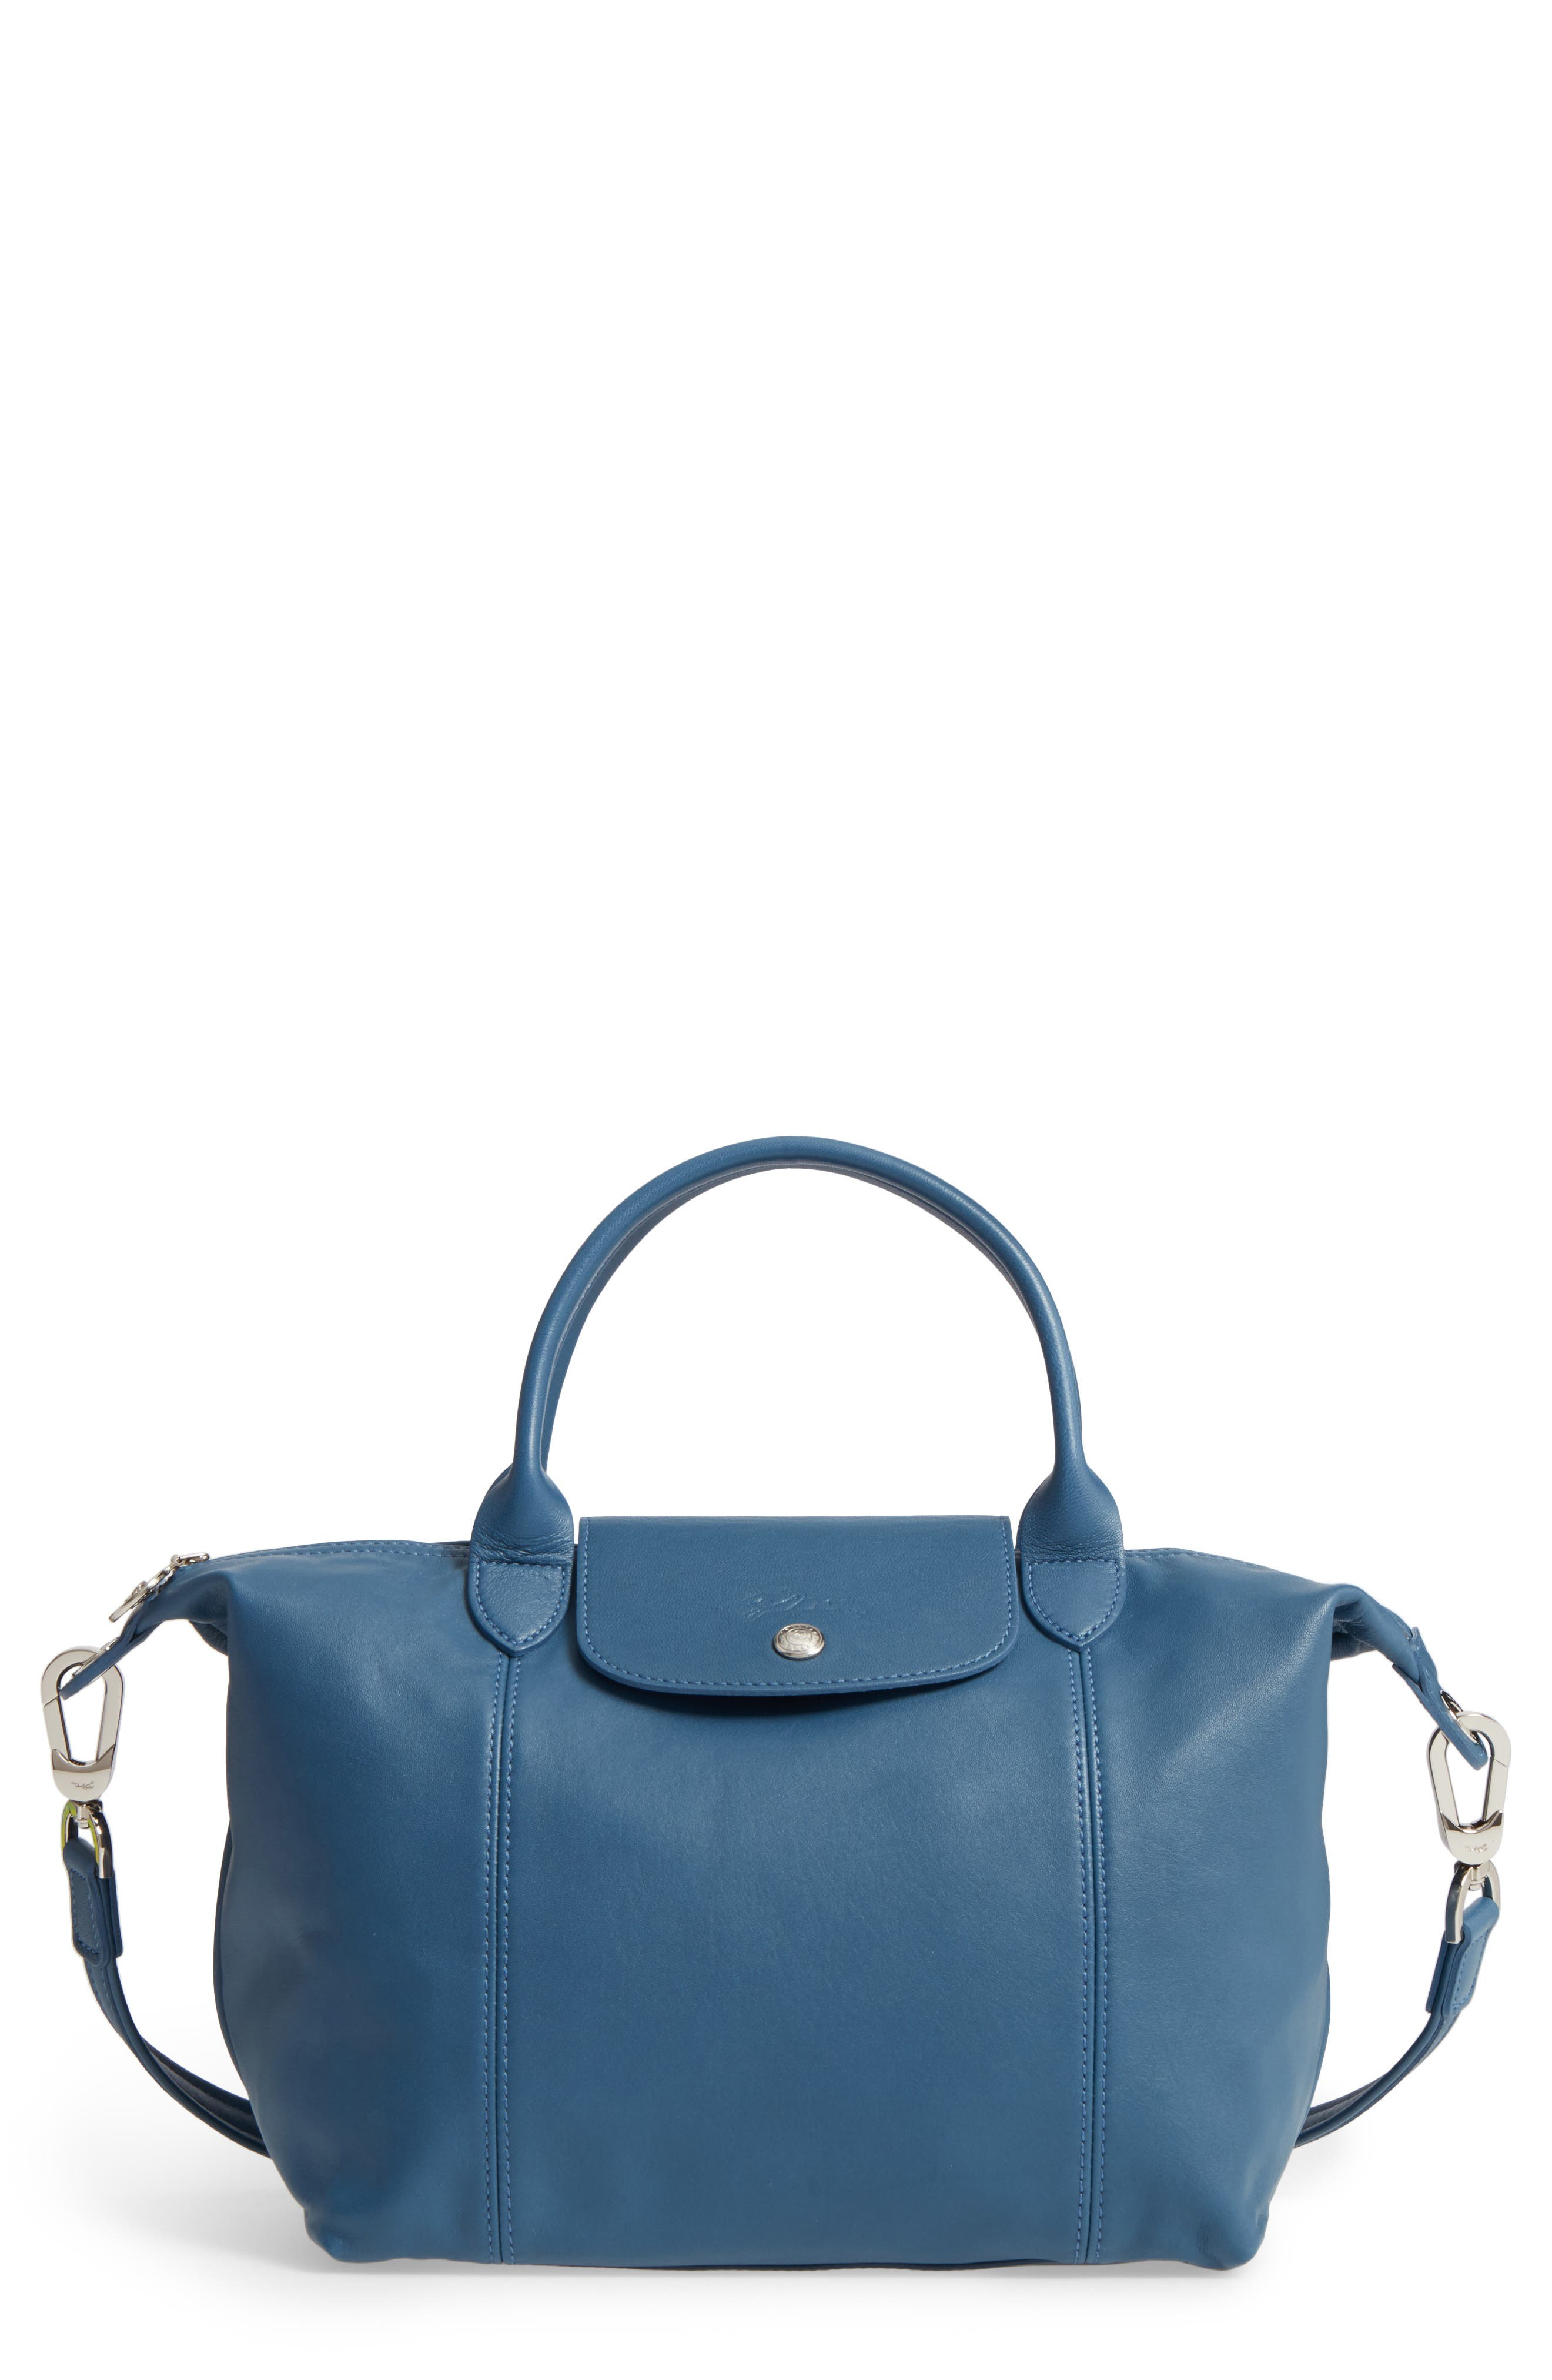 Small 'Le Pliage Cuir' Leather Top Handle Tote,                             Main thumbnail 12, color,